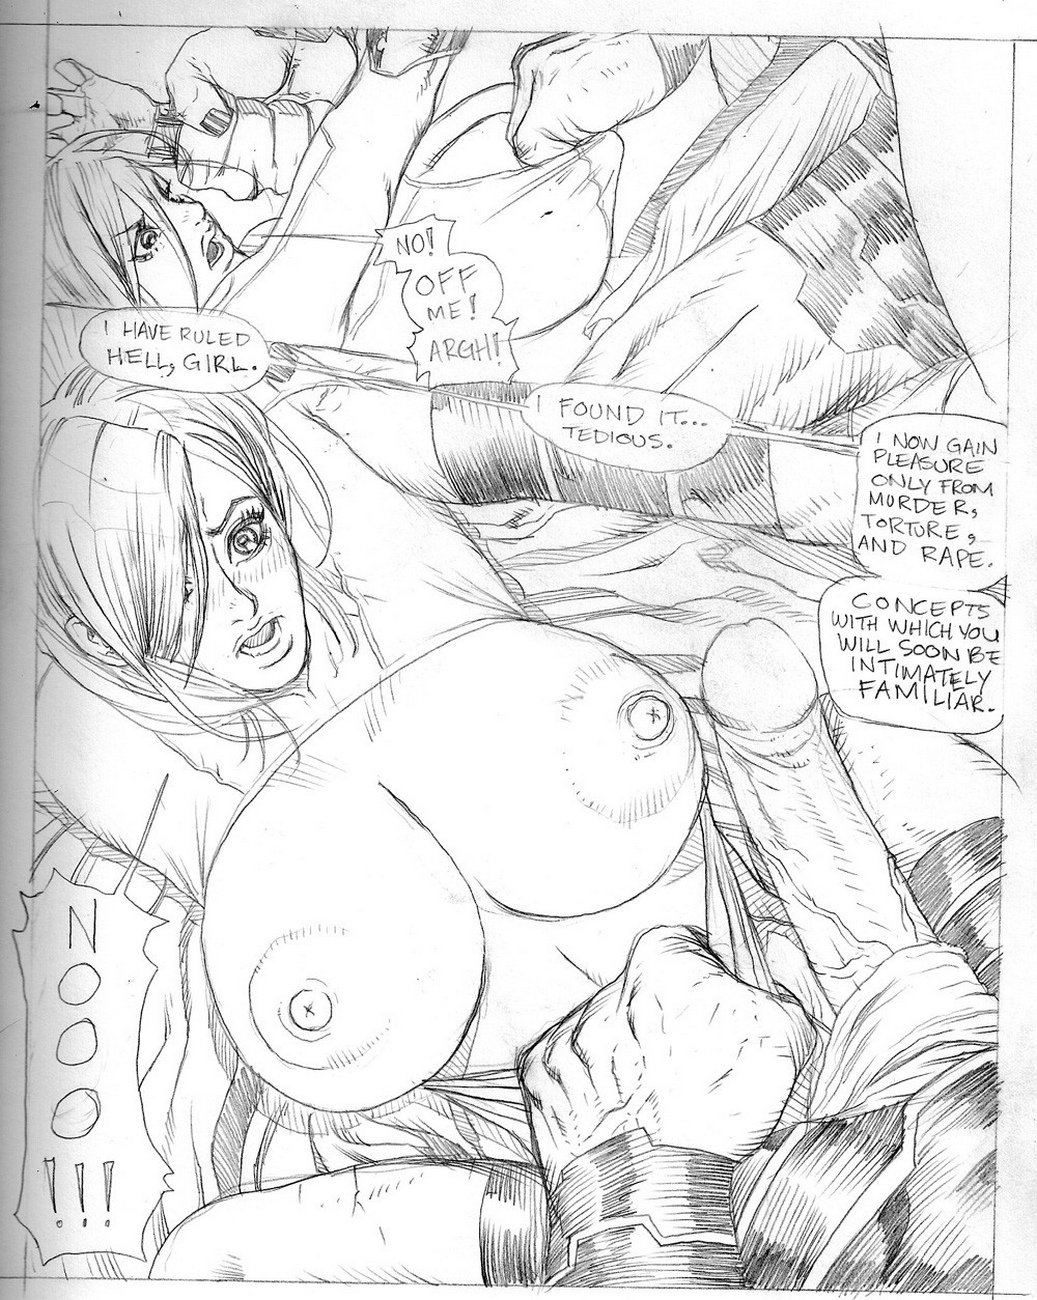 Whores-Of-Darkseid-2-Power-Girl-Violated 12 free sex comic